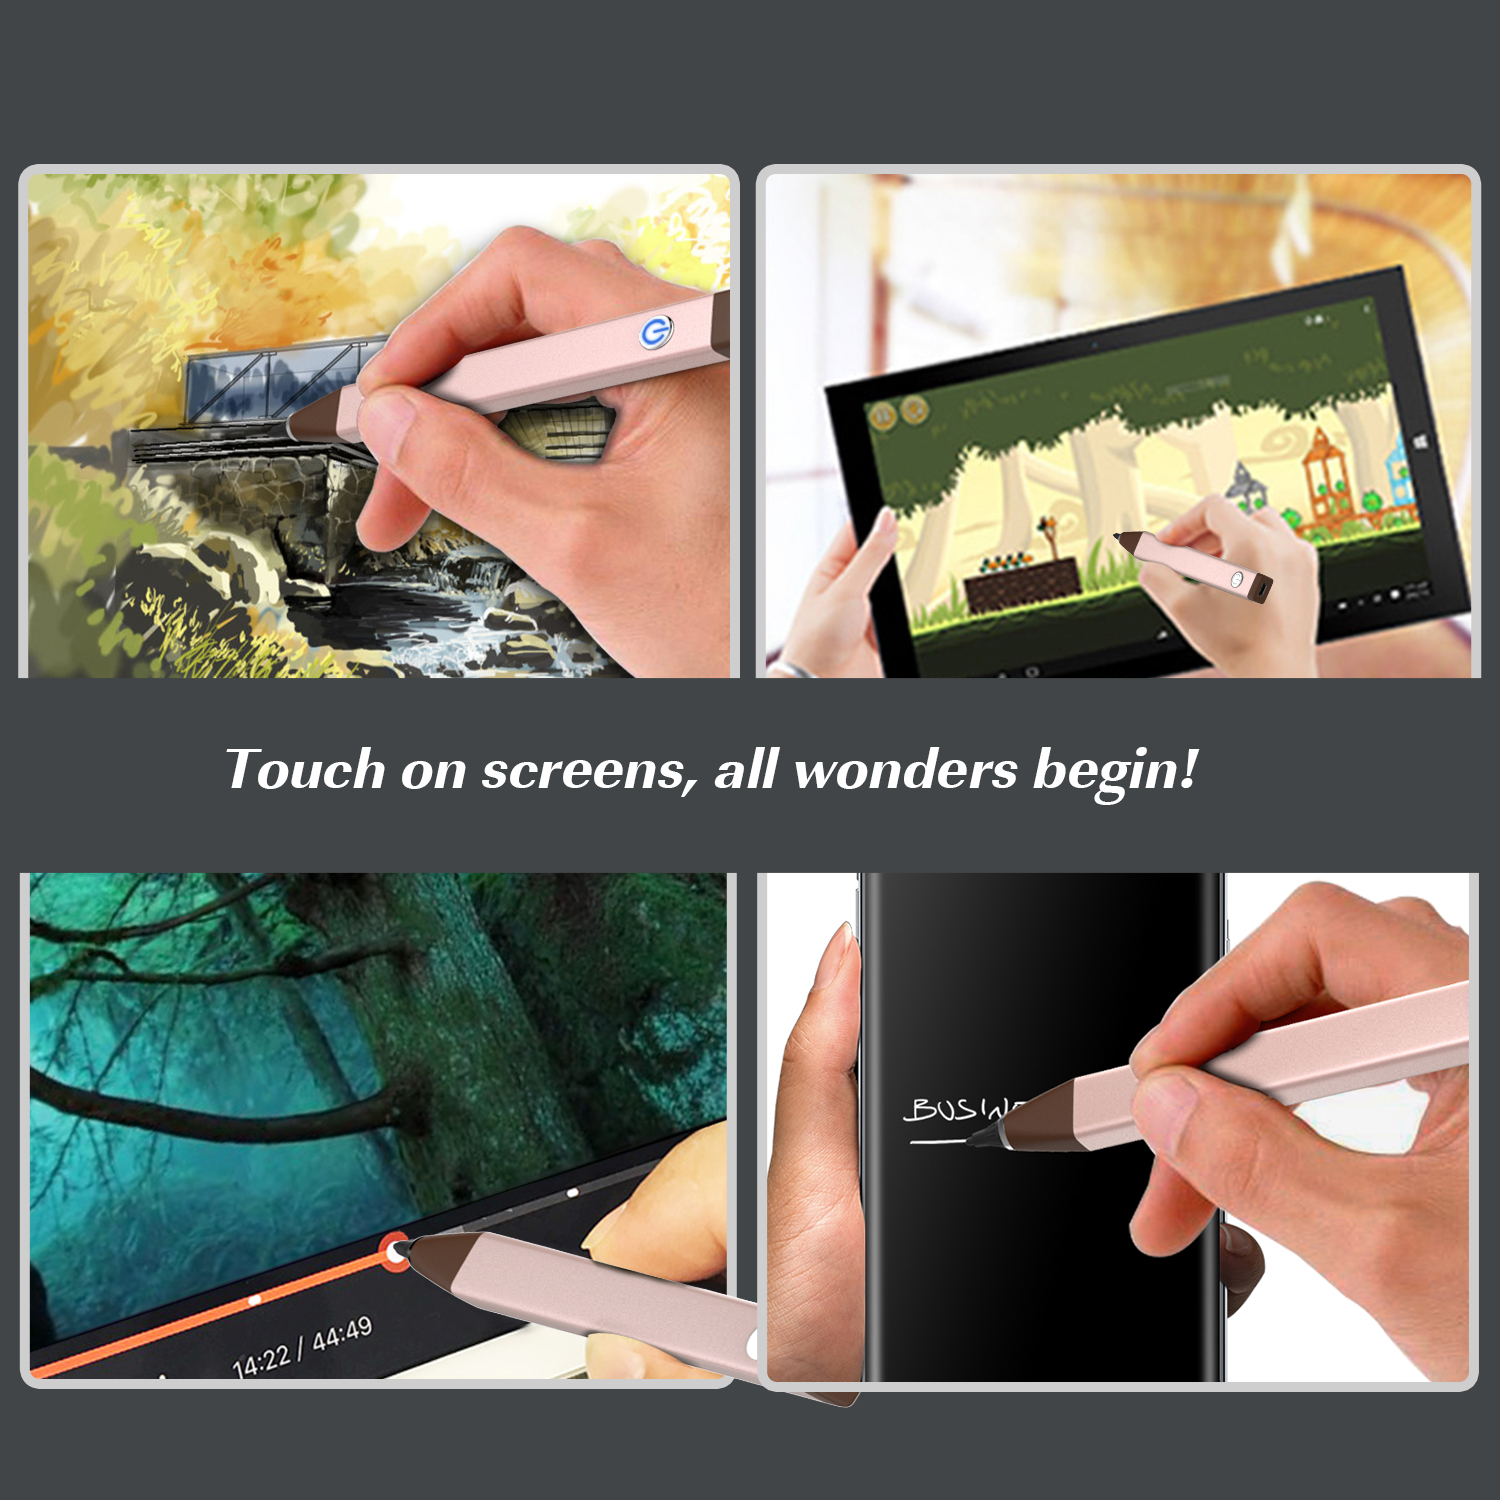 moko universal active stylus touchscreen digital pen for huawei  htc  google  lg 736313000115